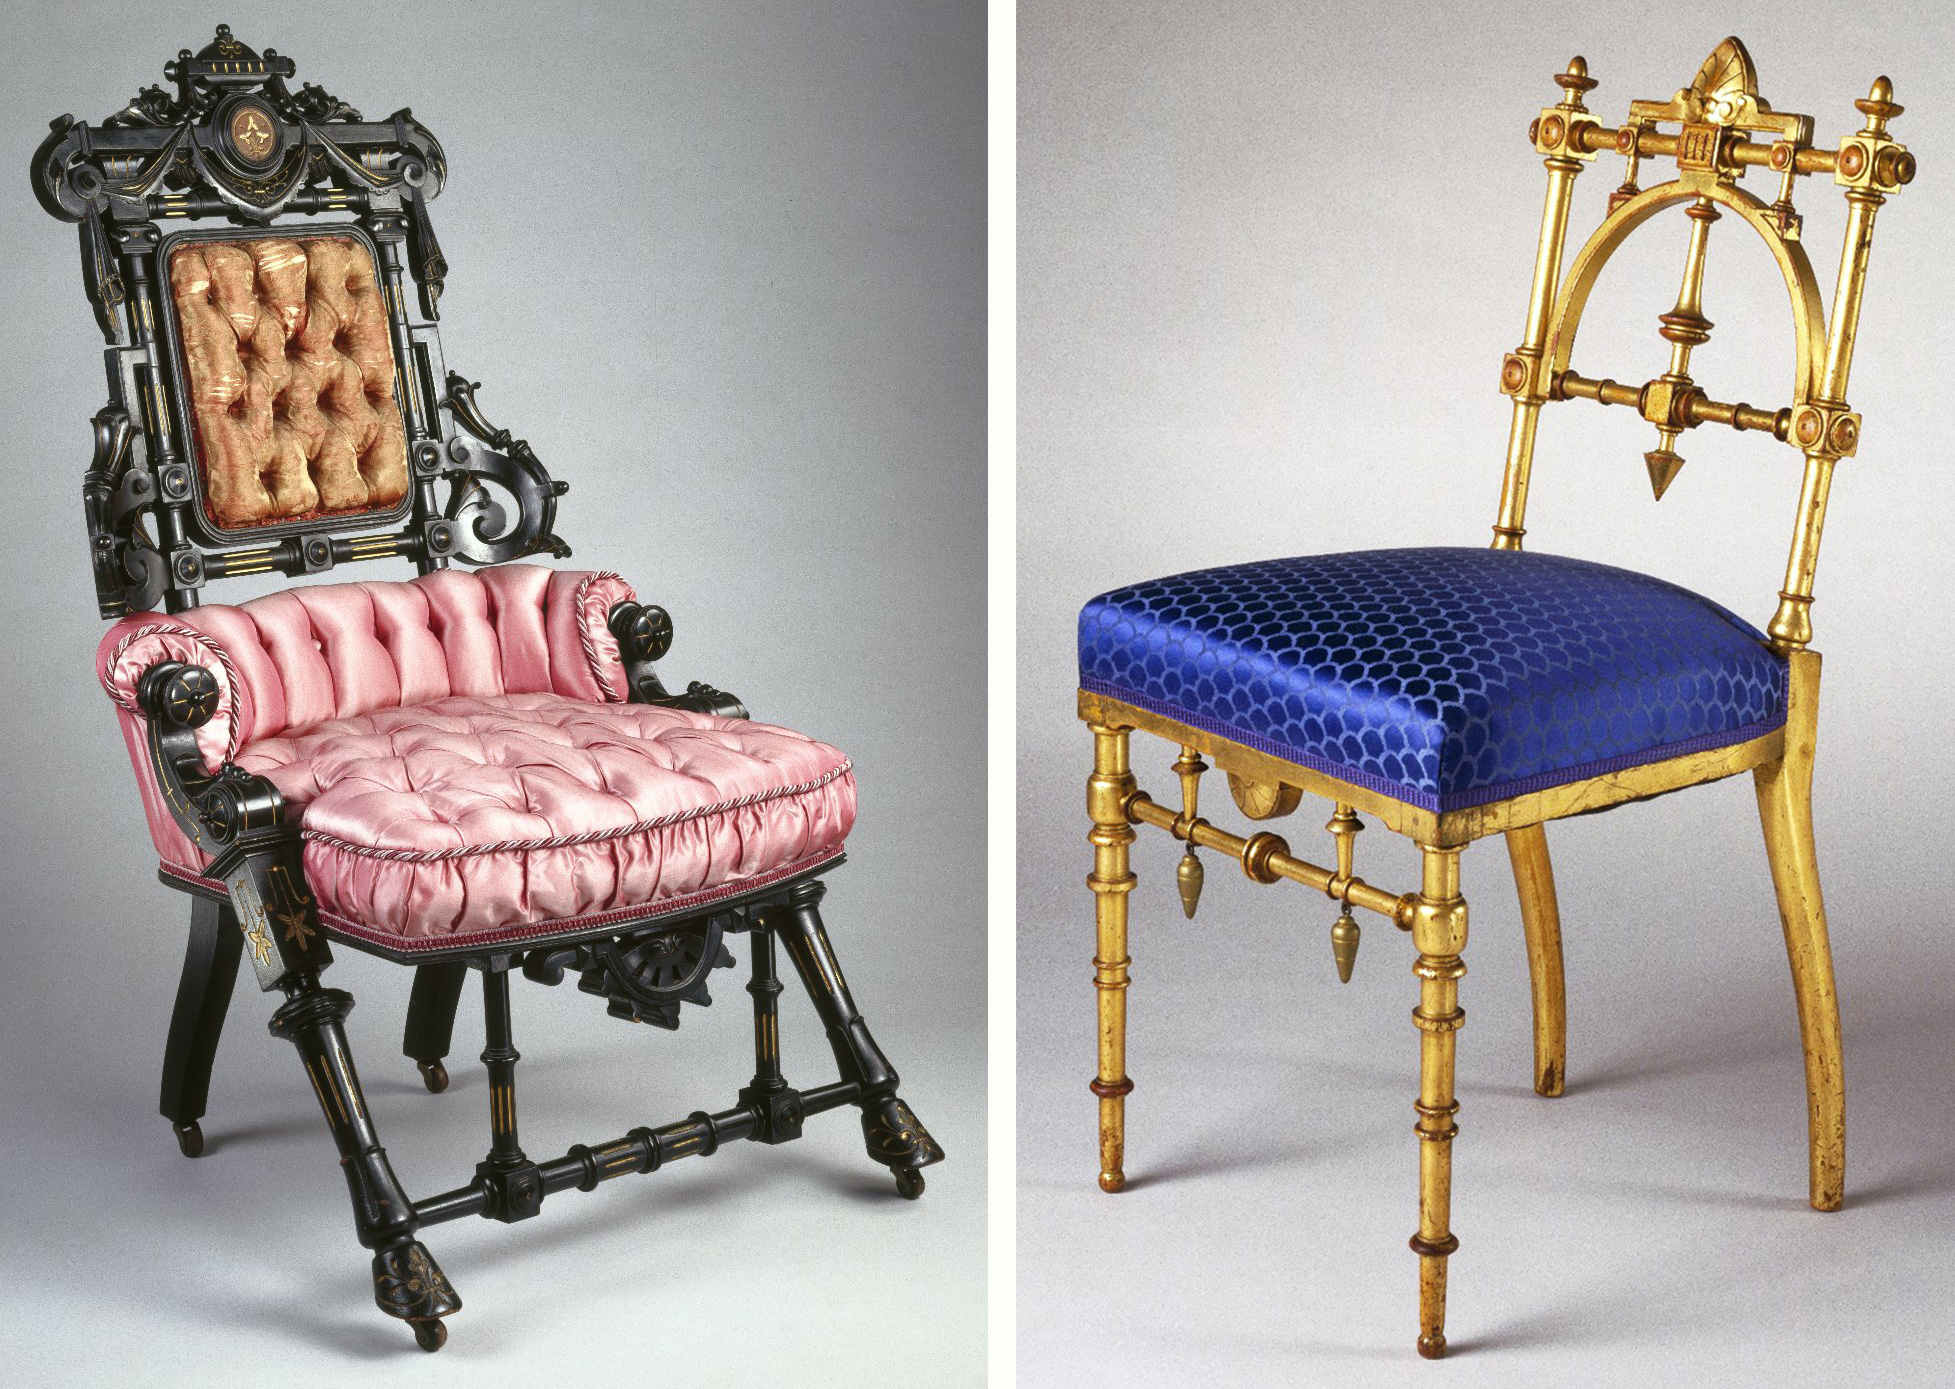 Left, An 1869 Hunzinger Chair Of Ebonized Wood Features Overt Ornamentation  Popular At The Time